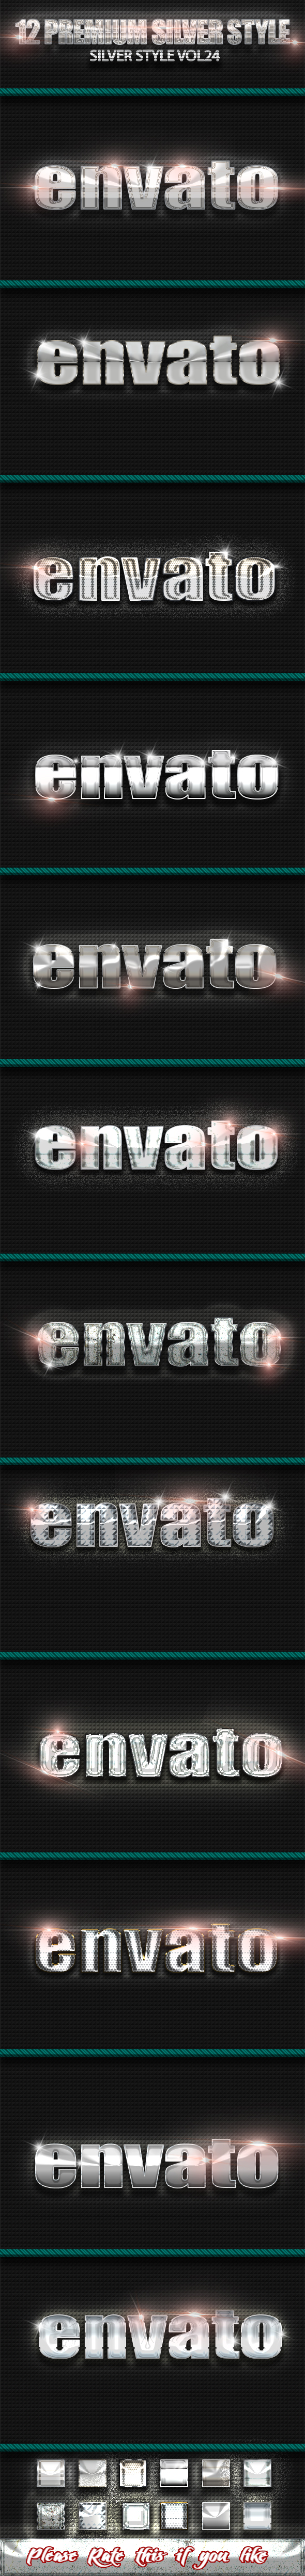 12 Photoshop SILVER Text Effect Styles Vol 24 - Text Effects Styles